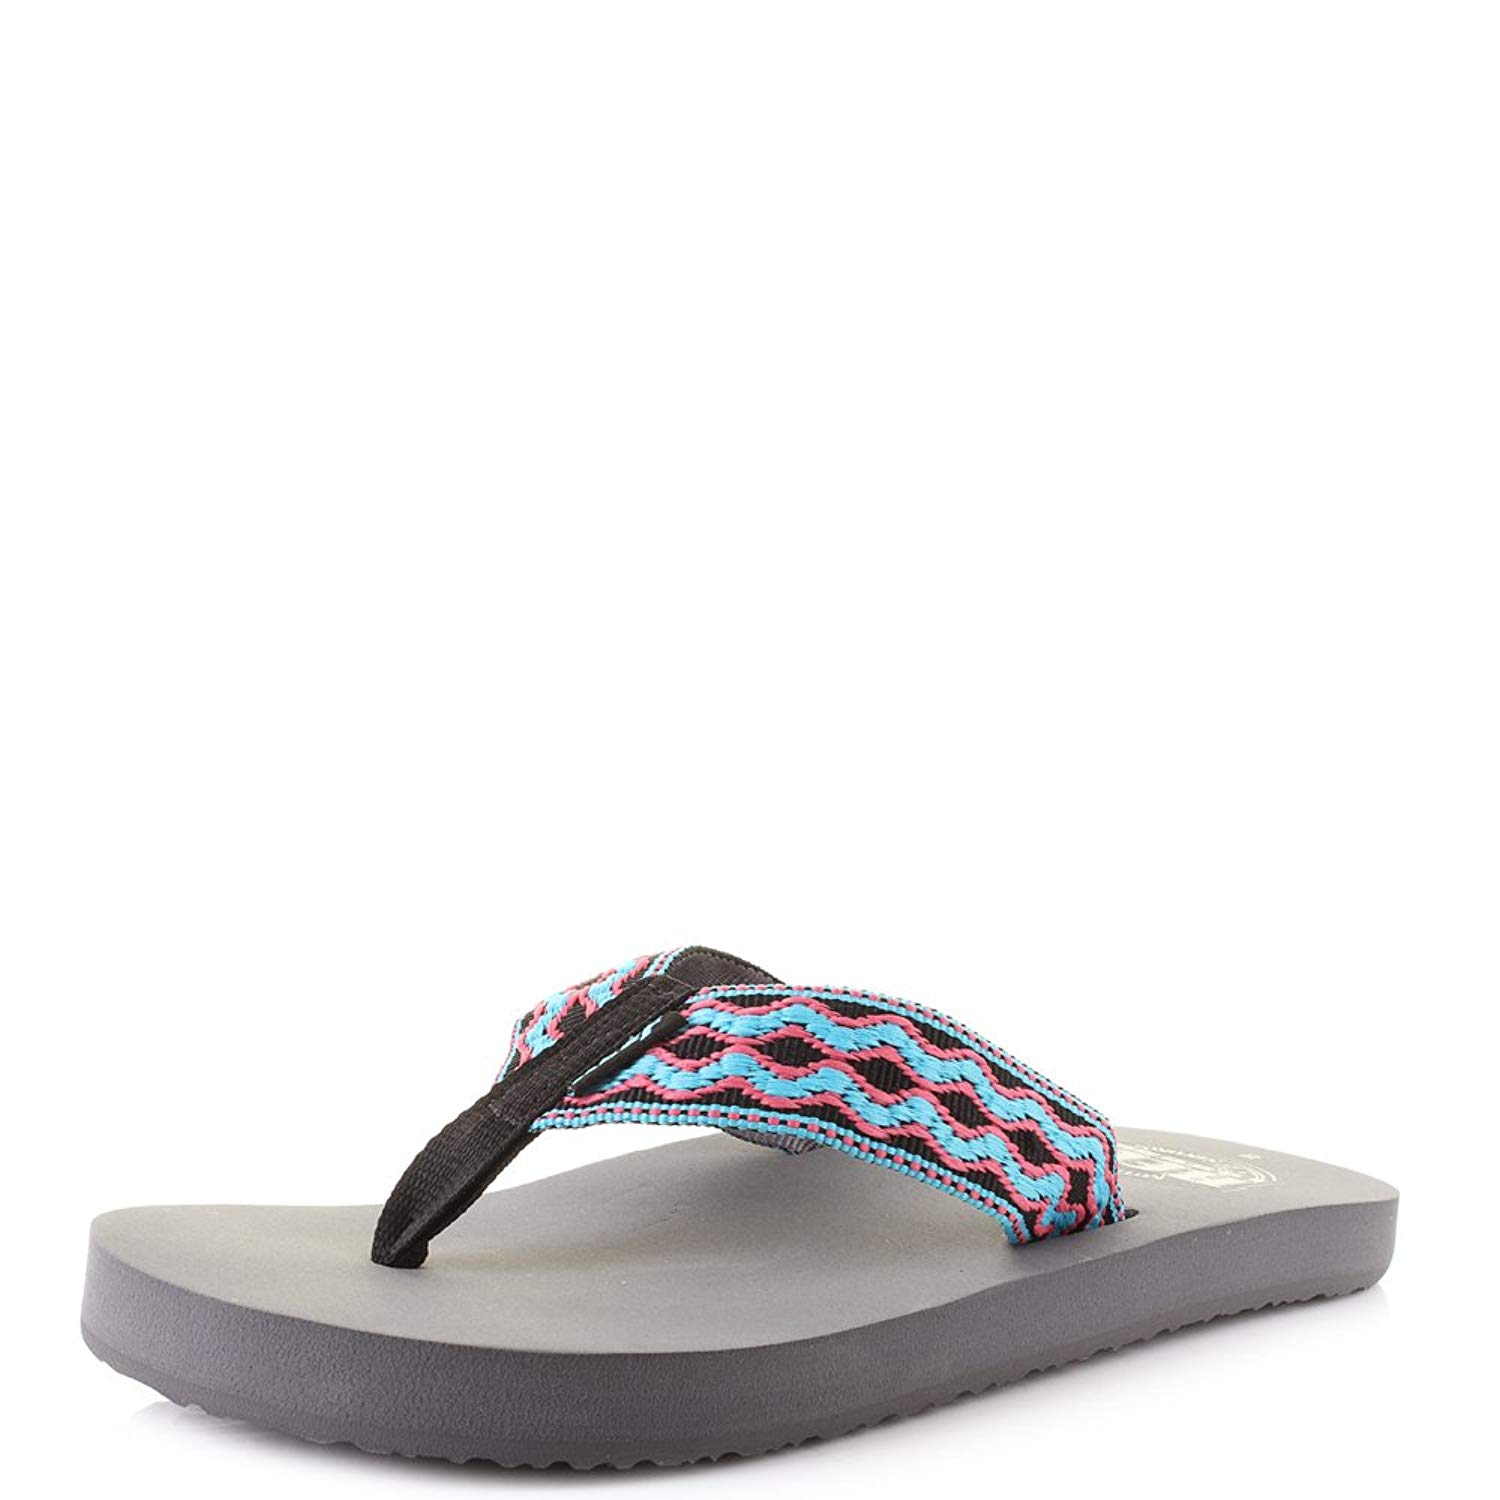 86b0e1e66a27 Get Quotations · Reef Smoothy Sandals